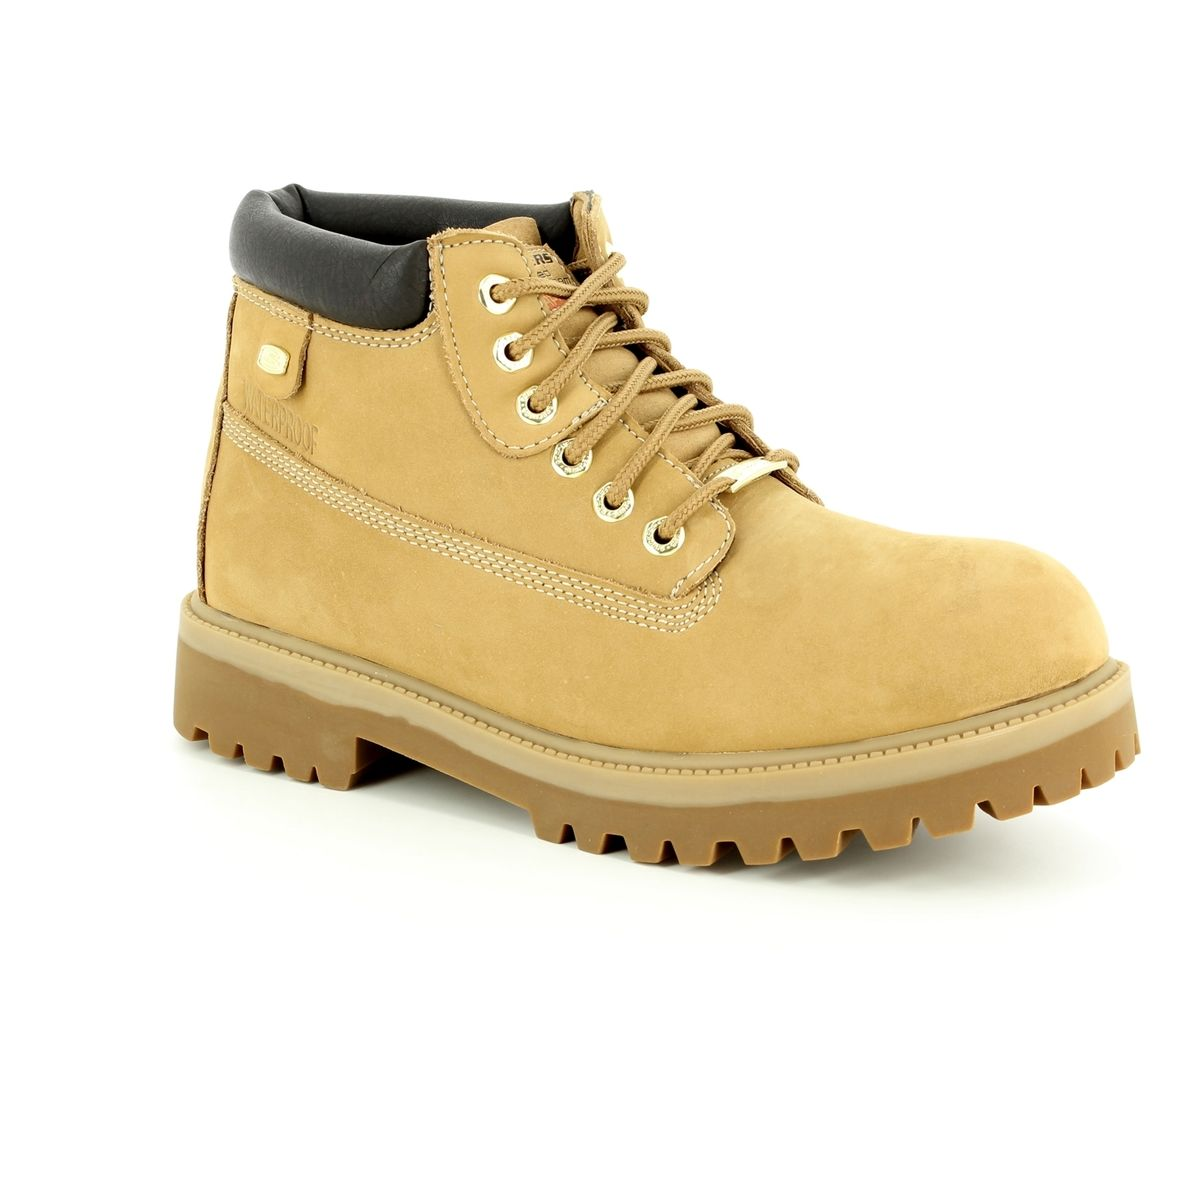 hommes's Skechers Sergeants Verdict Rugged Ankle Boot Wheat